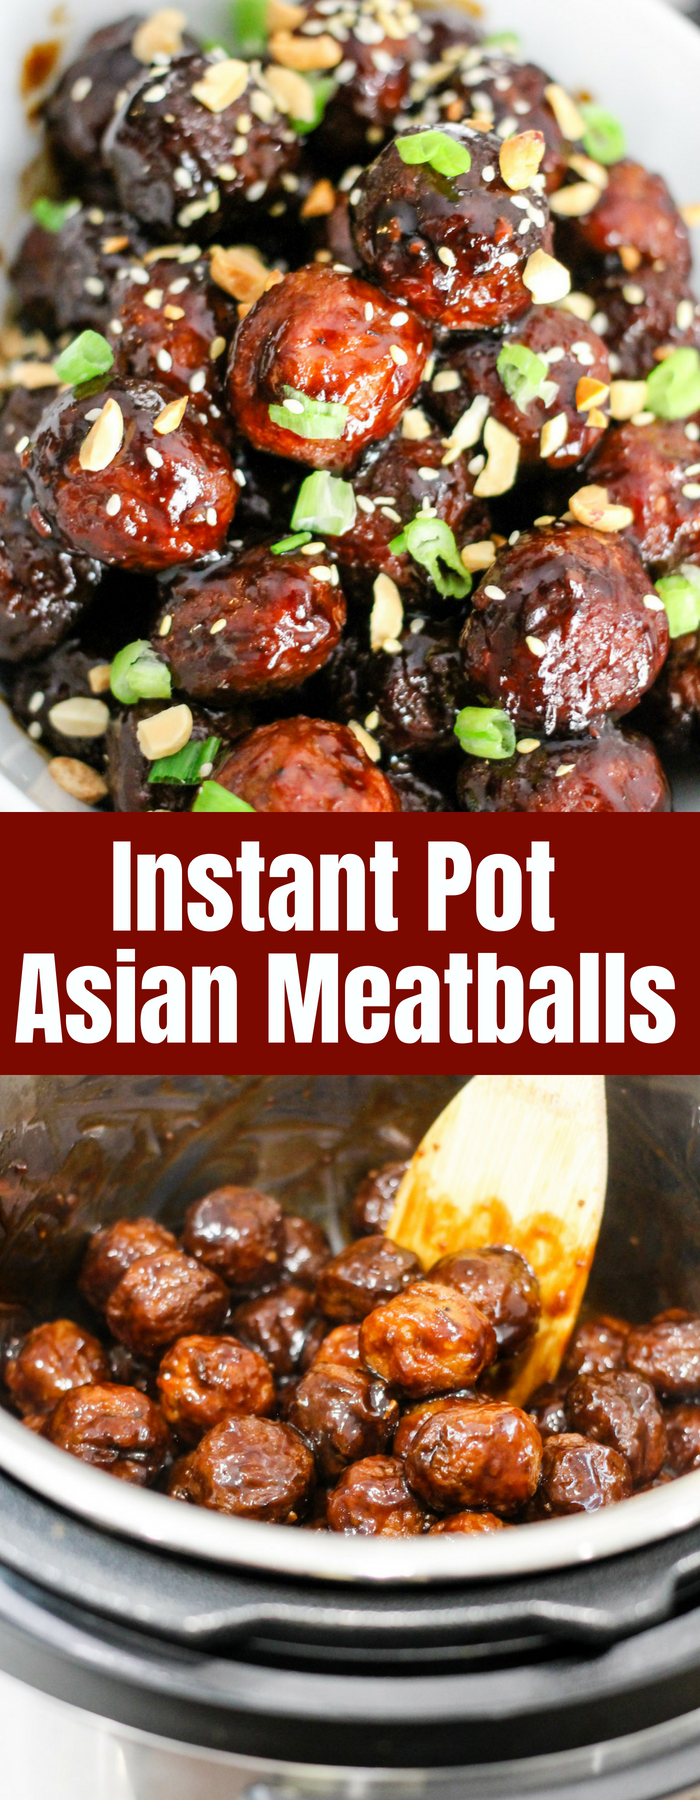 Instant Pot Asian Meatballs are the perfect easy appetizer; done in under 20 minutes! The sweet and slightly spicy sauce will have you hooked year round!